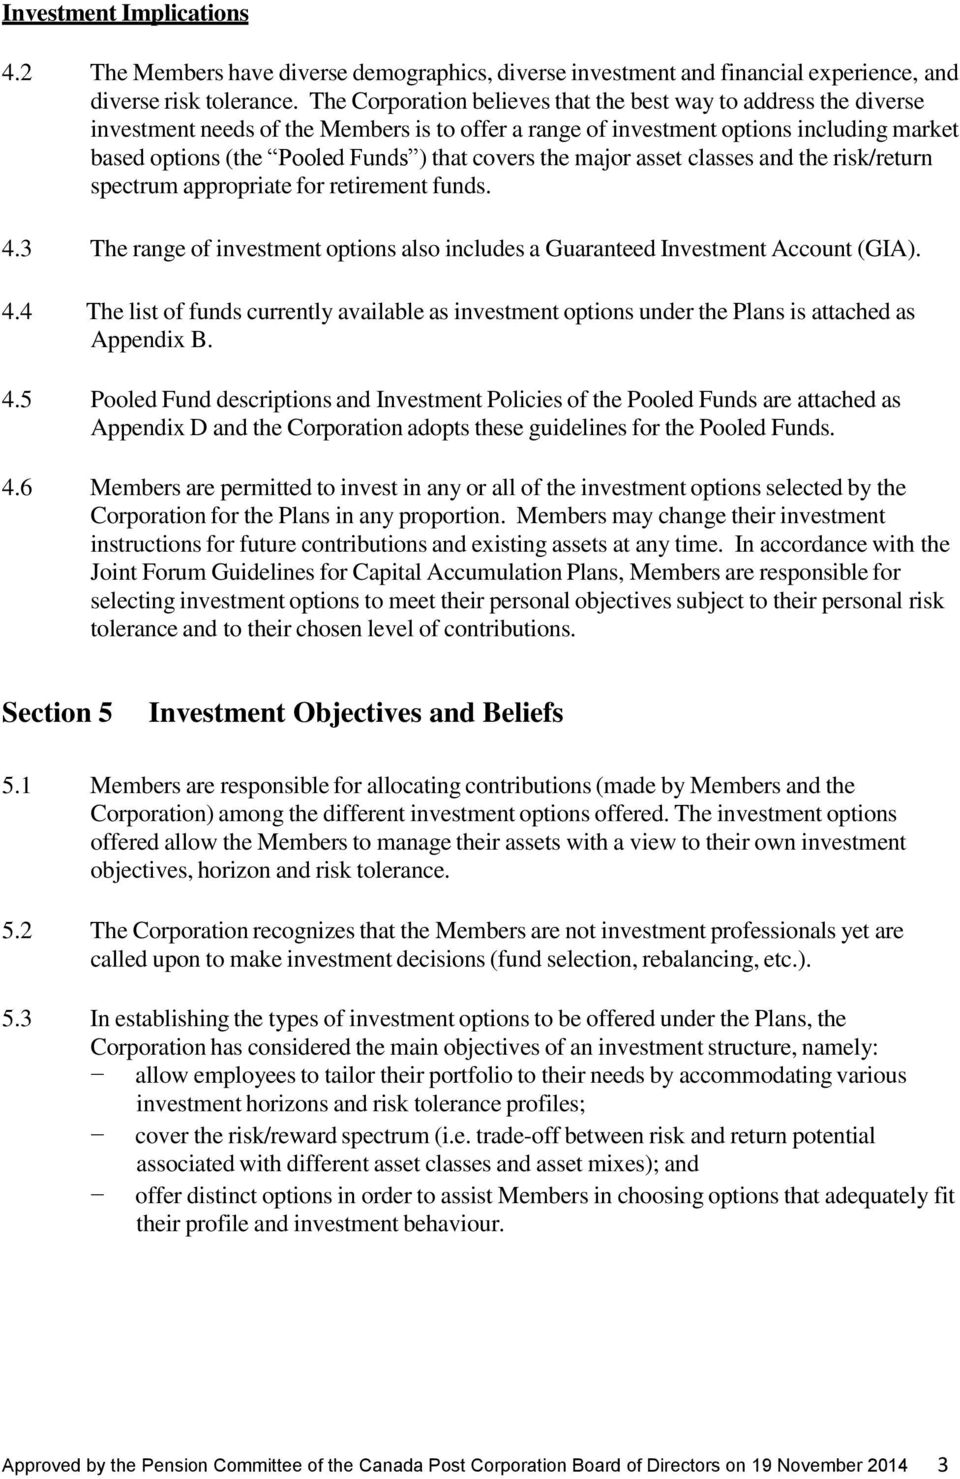 covers the major asset classes and the risk/return spectrum appropriate for retirement funds. 4.3 The range of investment options also includes a Guaranteed Investment Account (GIA). 4.4 The list of funds currently available as investment options under the Plans is attached as Appendix B.